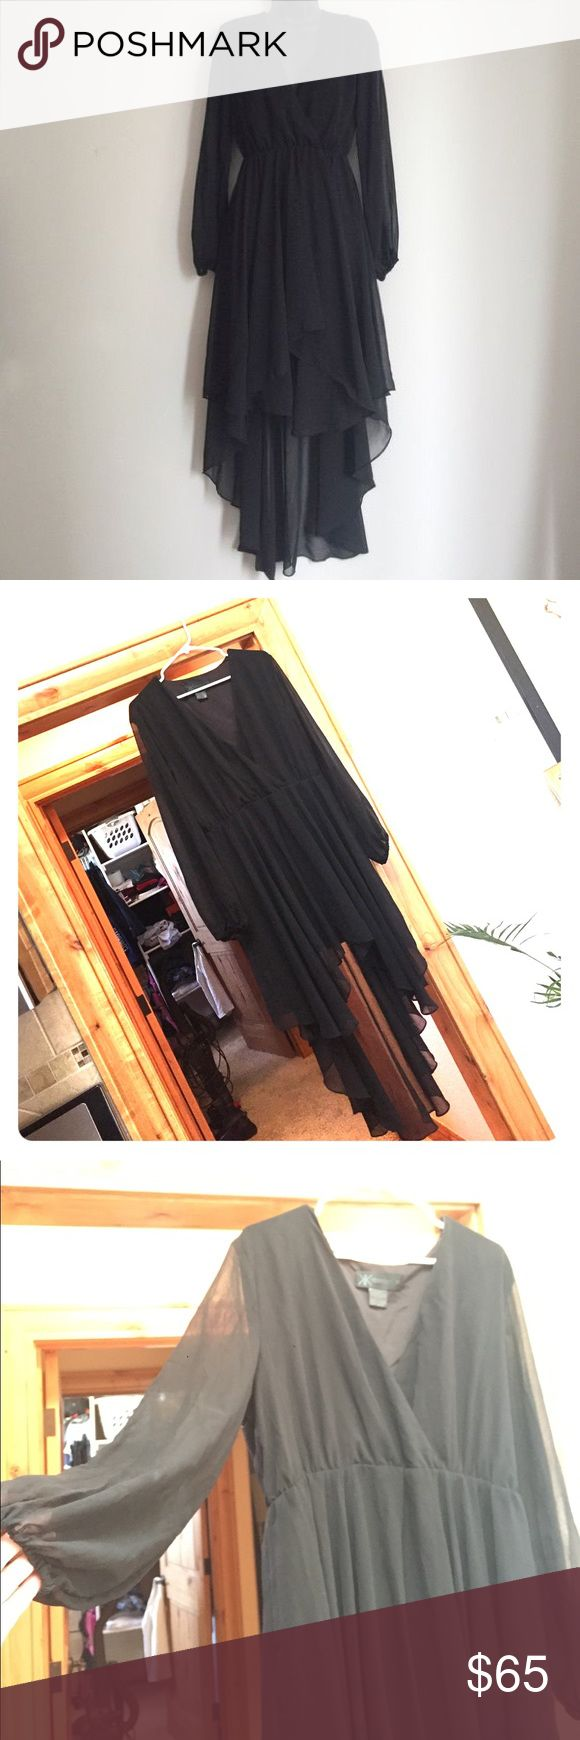 Black chiffon dress Kardashian Kollection Black Chiffon dress with solid black underline. Sheer sleeves, short in front, long in back, deep v plunge neck, VERY COMFORTABLE. Size XL (I wear 14/16). Worn a handful of times, no rips, snags or sign of wear. Kardashian Kollection Dresses Long Sleeve